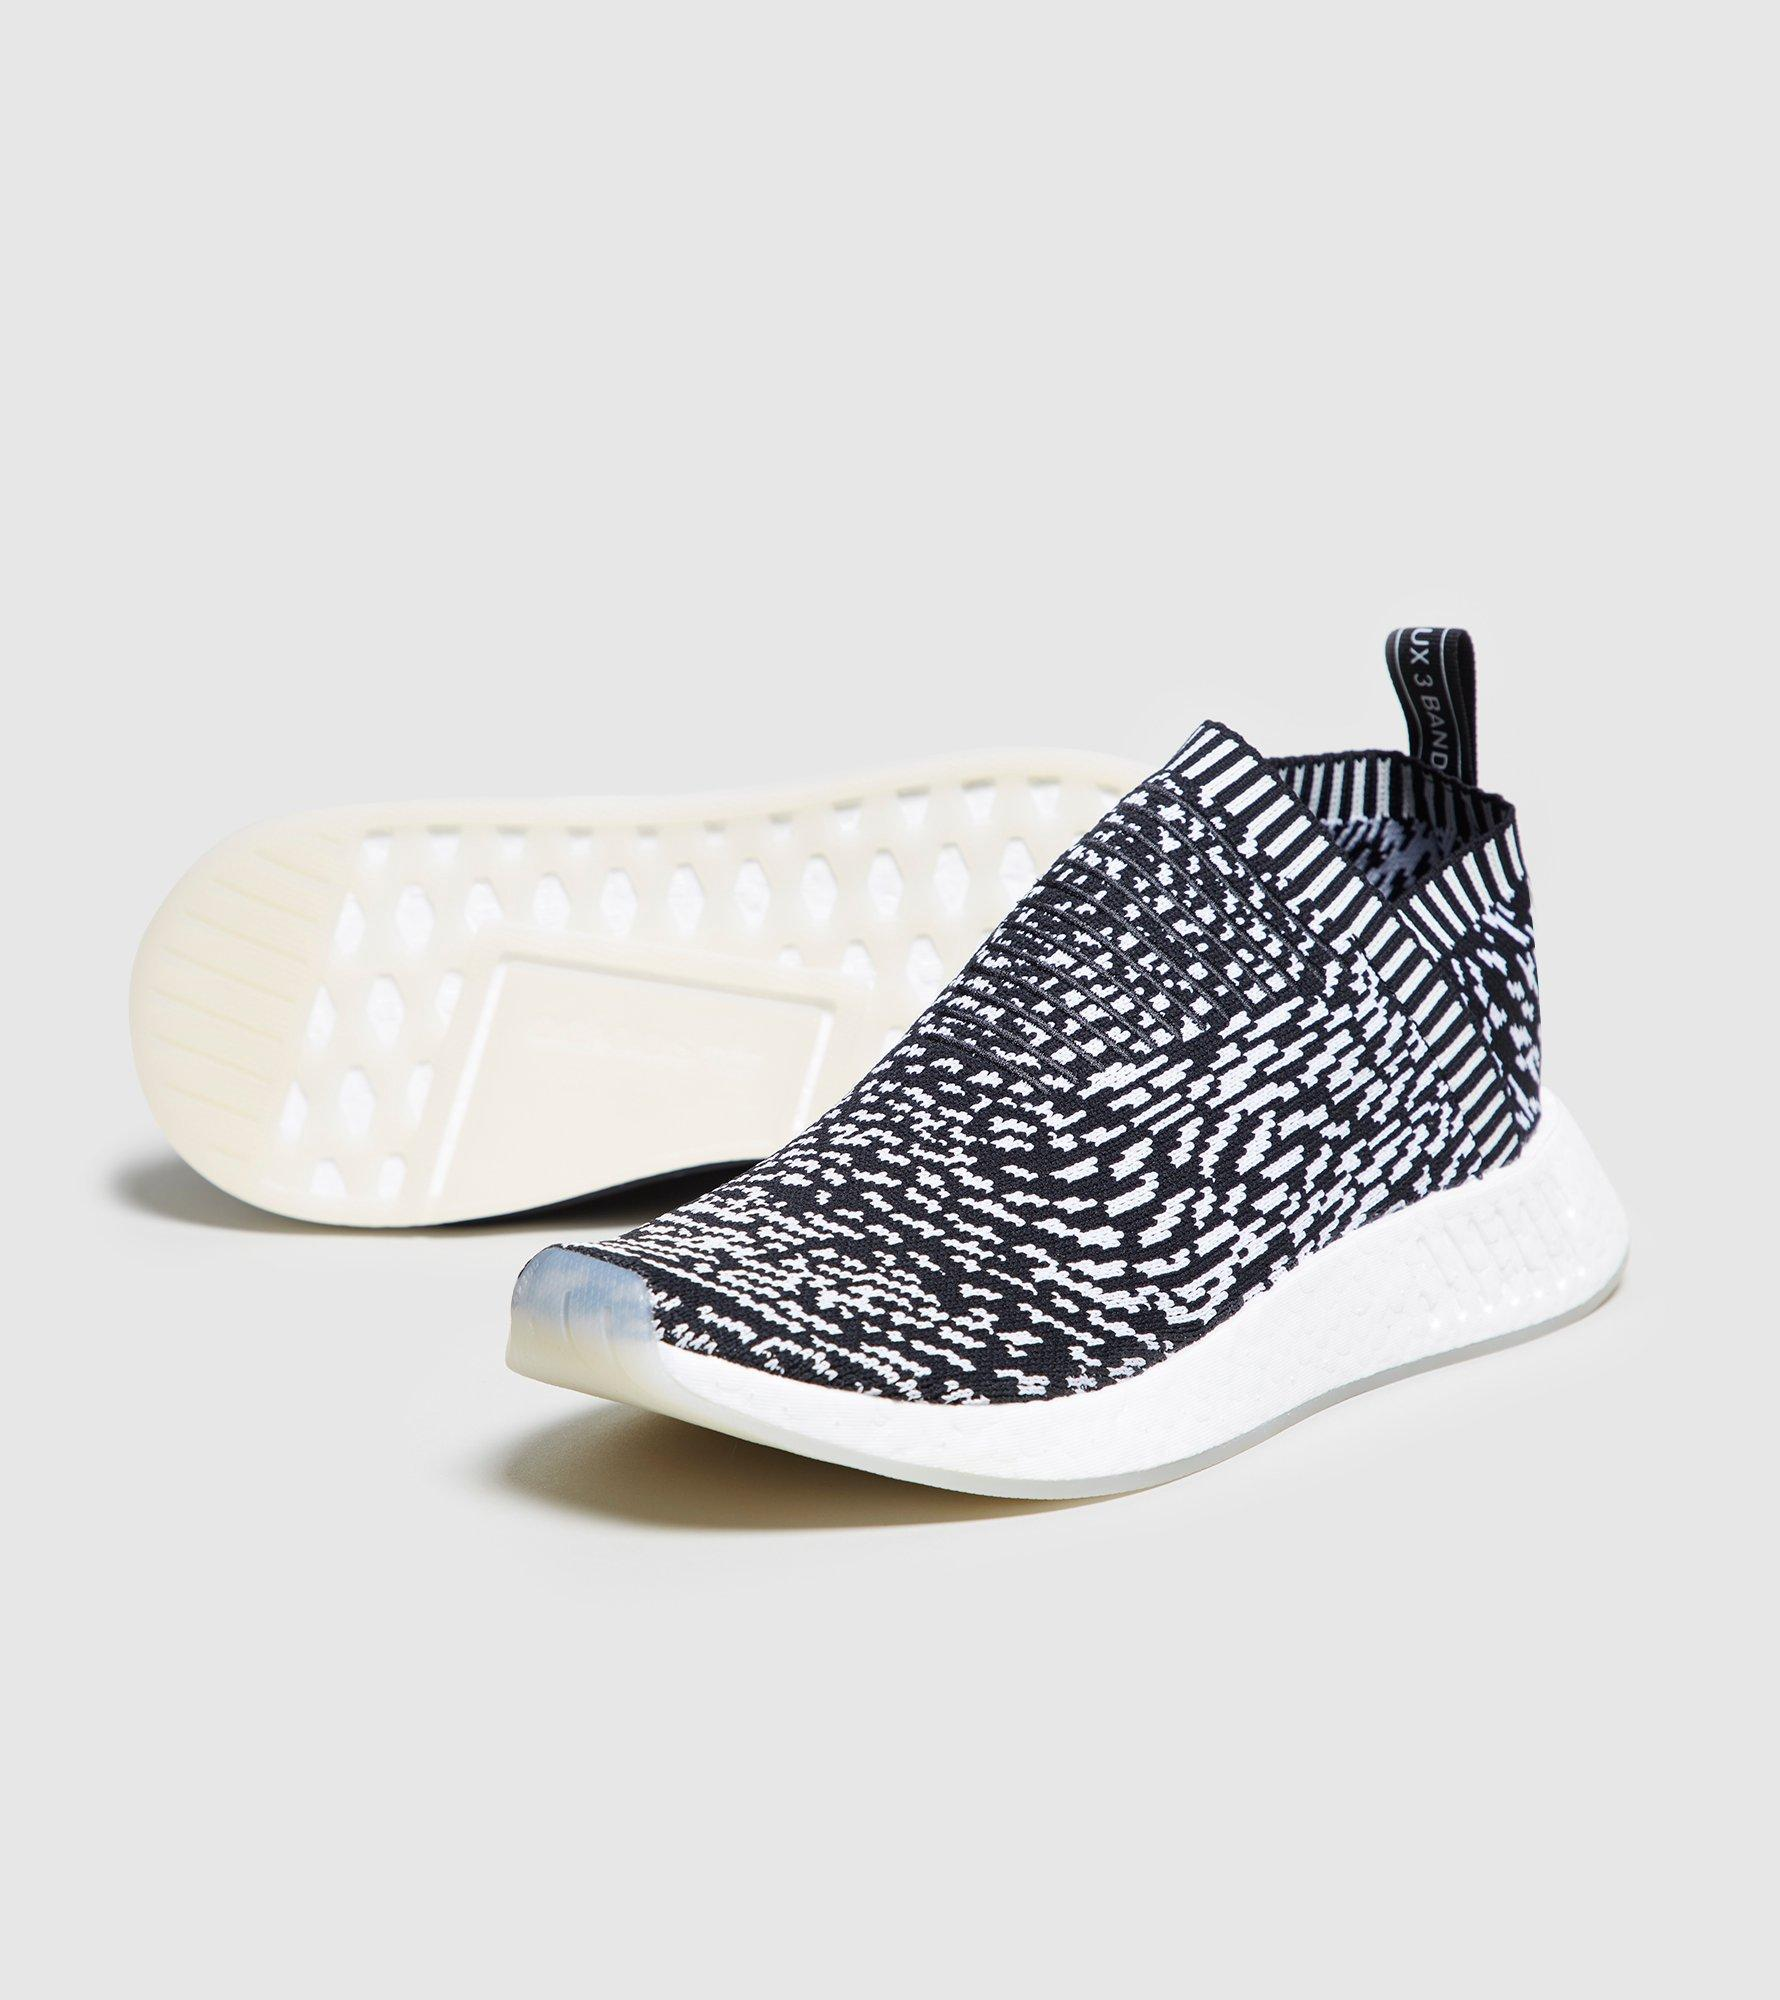 adidas Originals Nmd Cs2 Sashiko in BlackWhite (White) for